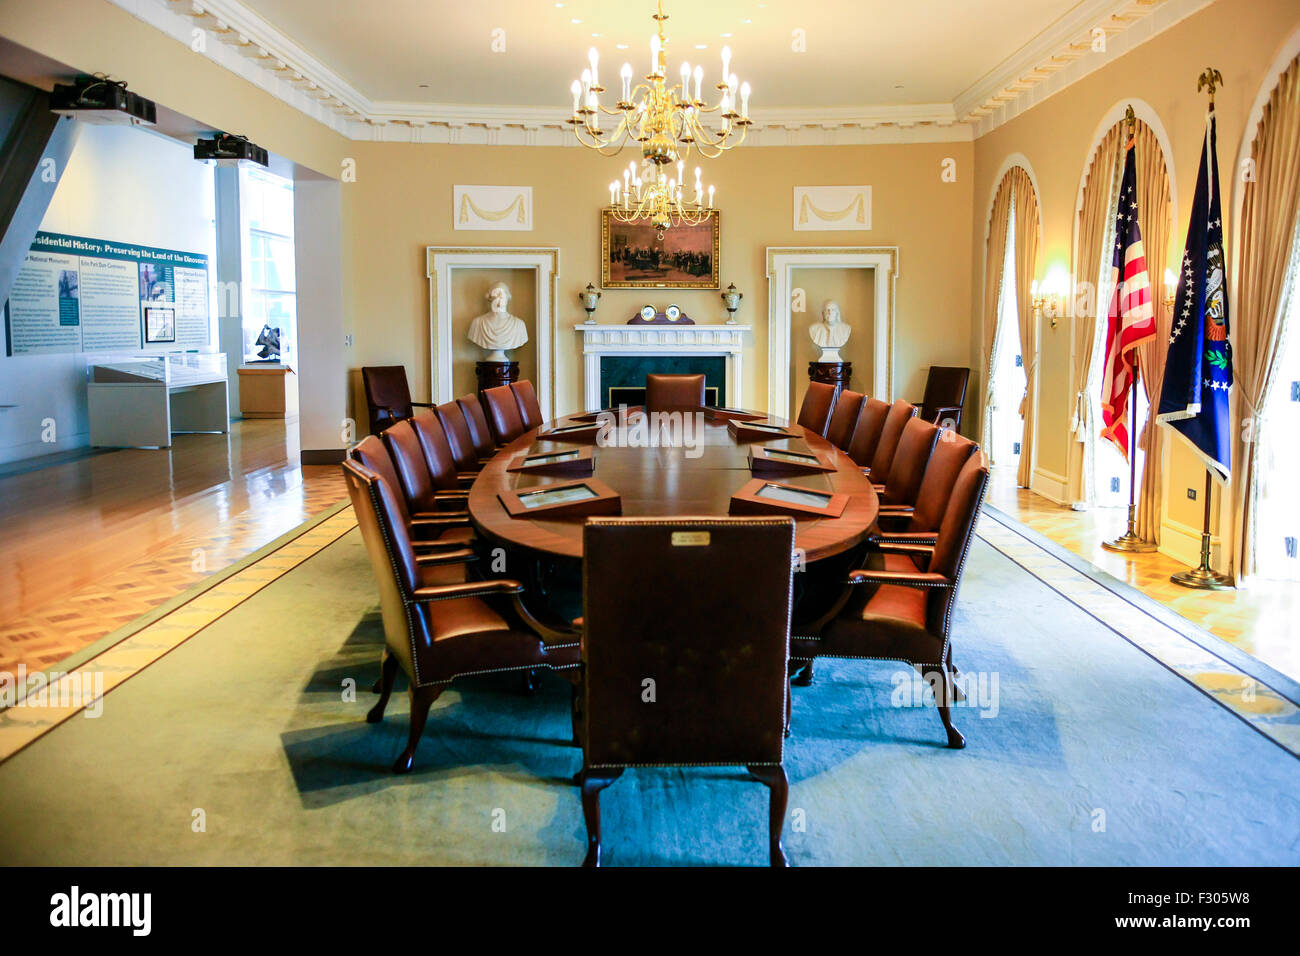 A Full Size Replica Of The Cabinet Room At The William J. Clinton  Presidential Center In Little Rock Arkansas